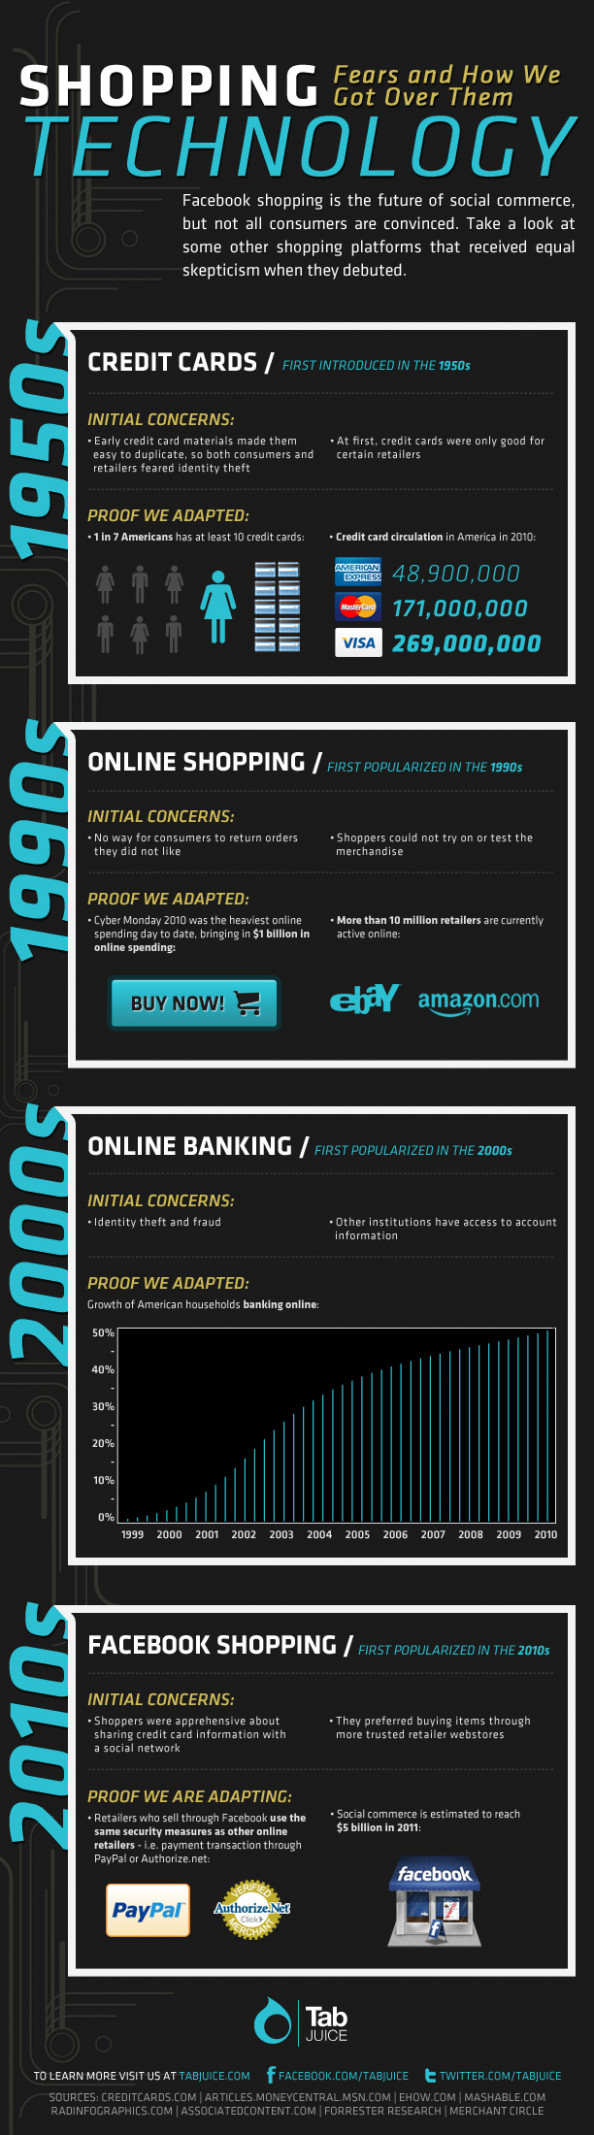 Shopping Technology Fears and How We Got Over them Infographic